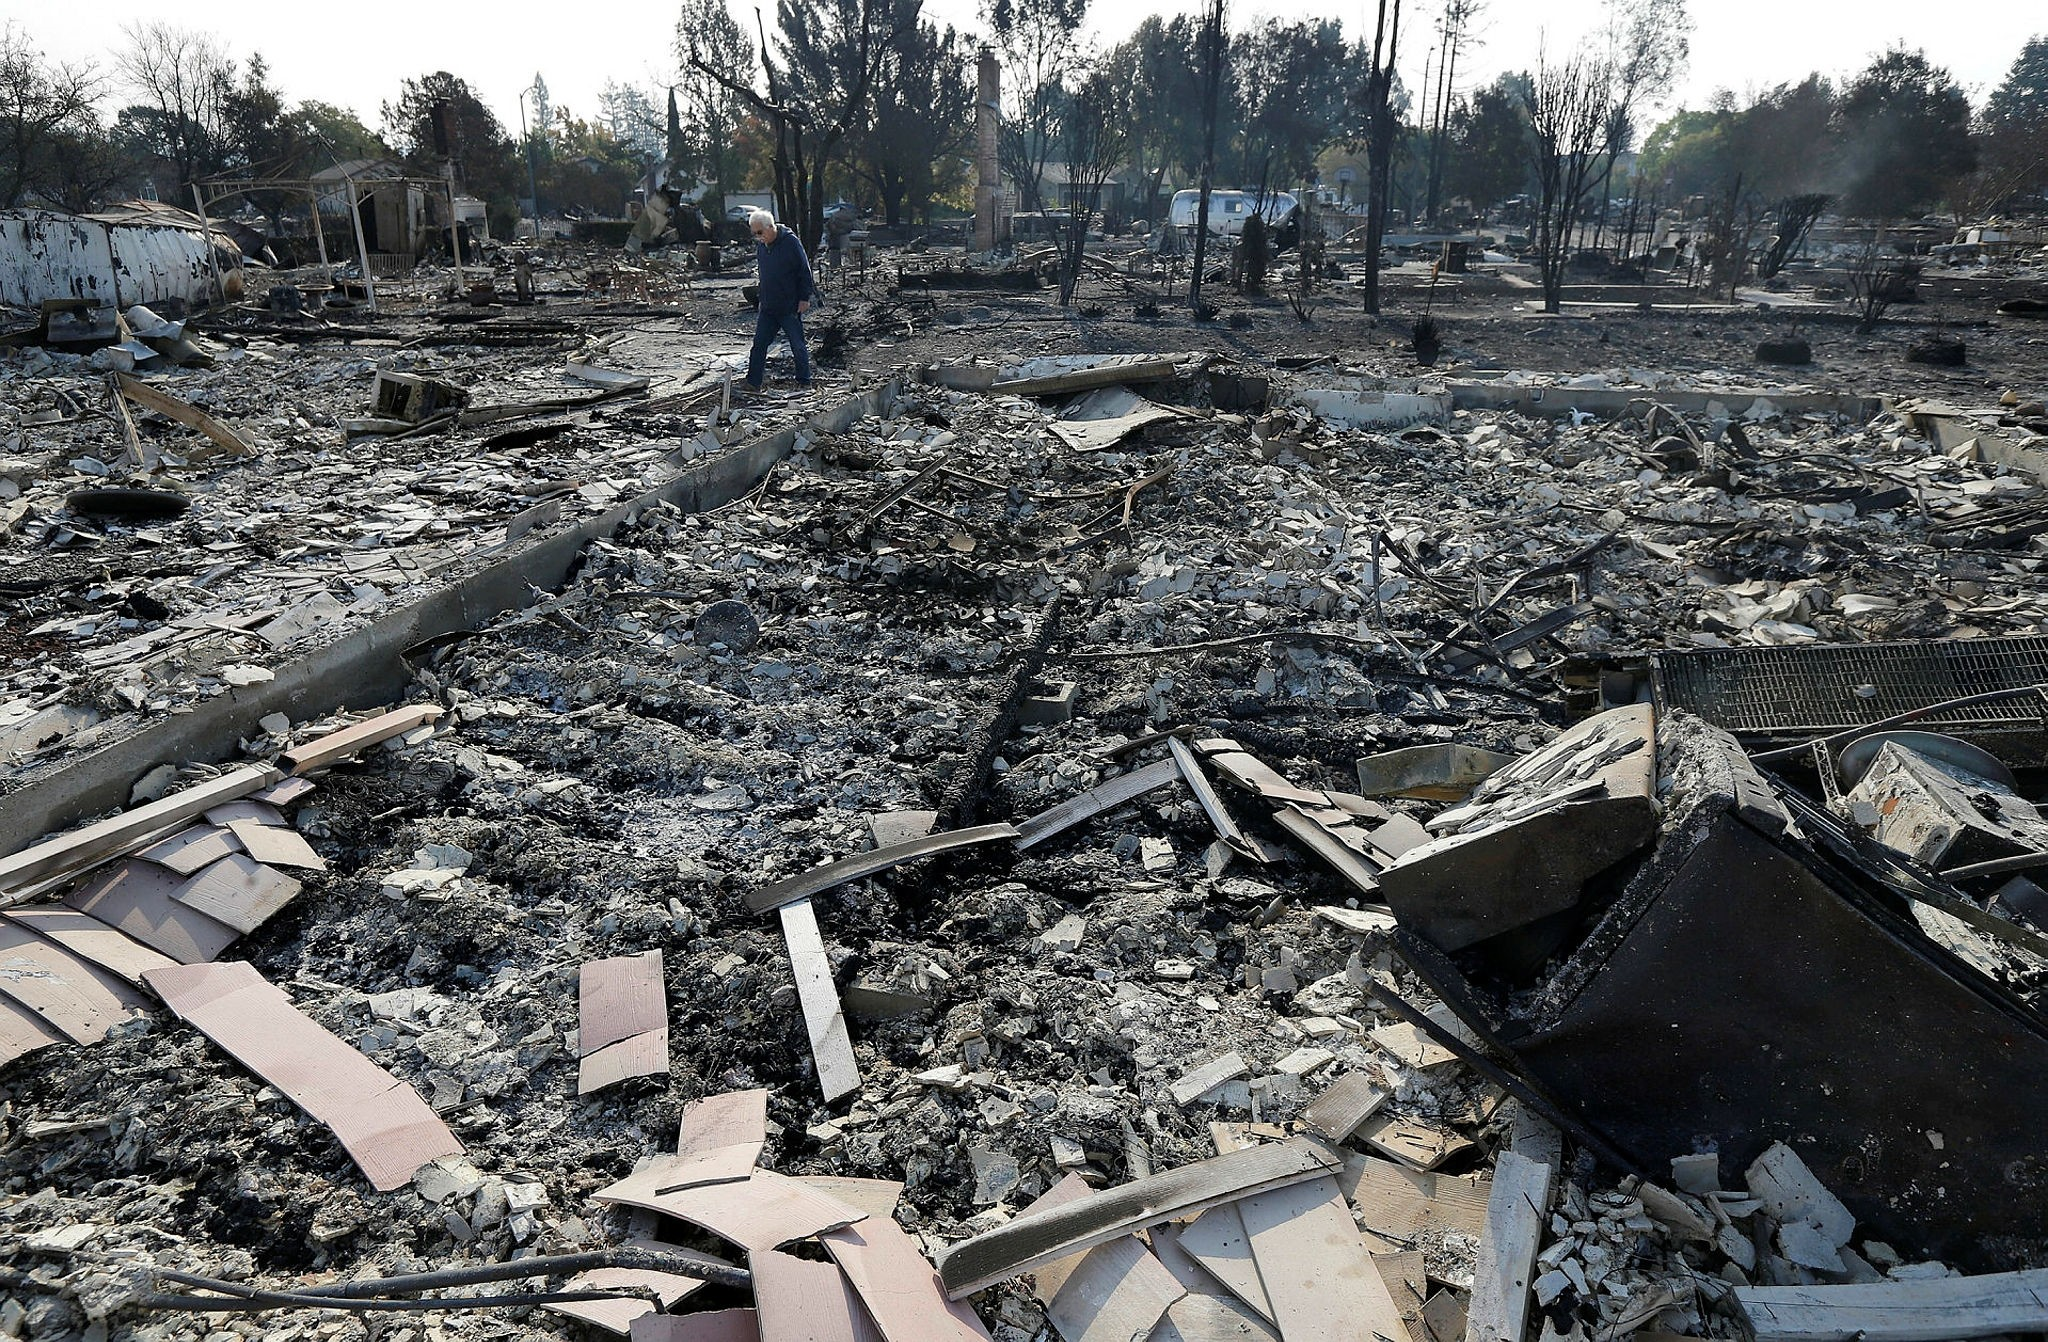 Phil Rush walks through the burnt remains at the site of his home destroyed by fires in Santa Rosa, Calif., Wednesday, Oct. 11, 2017. (AP Photo)